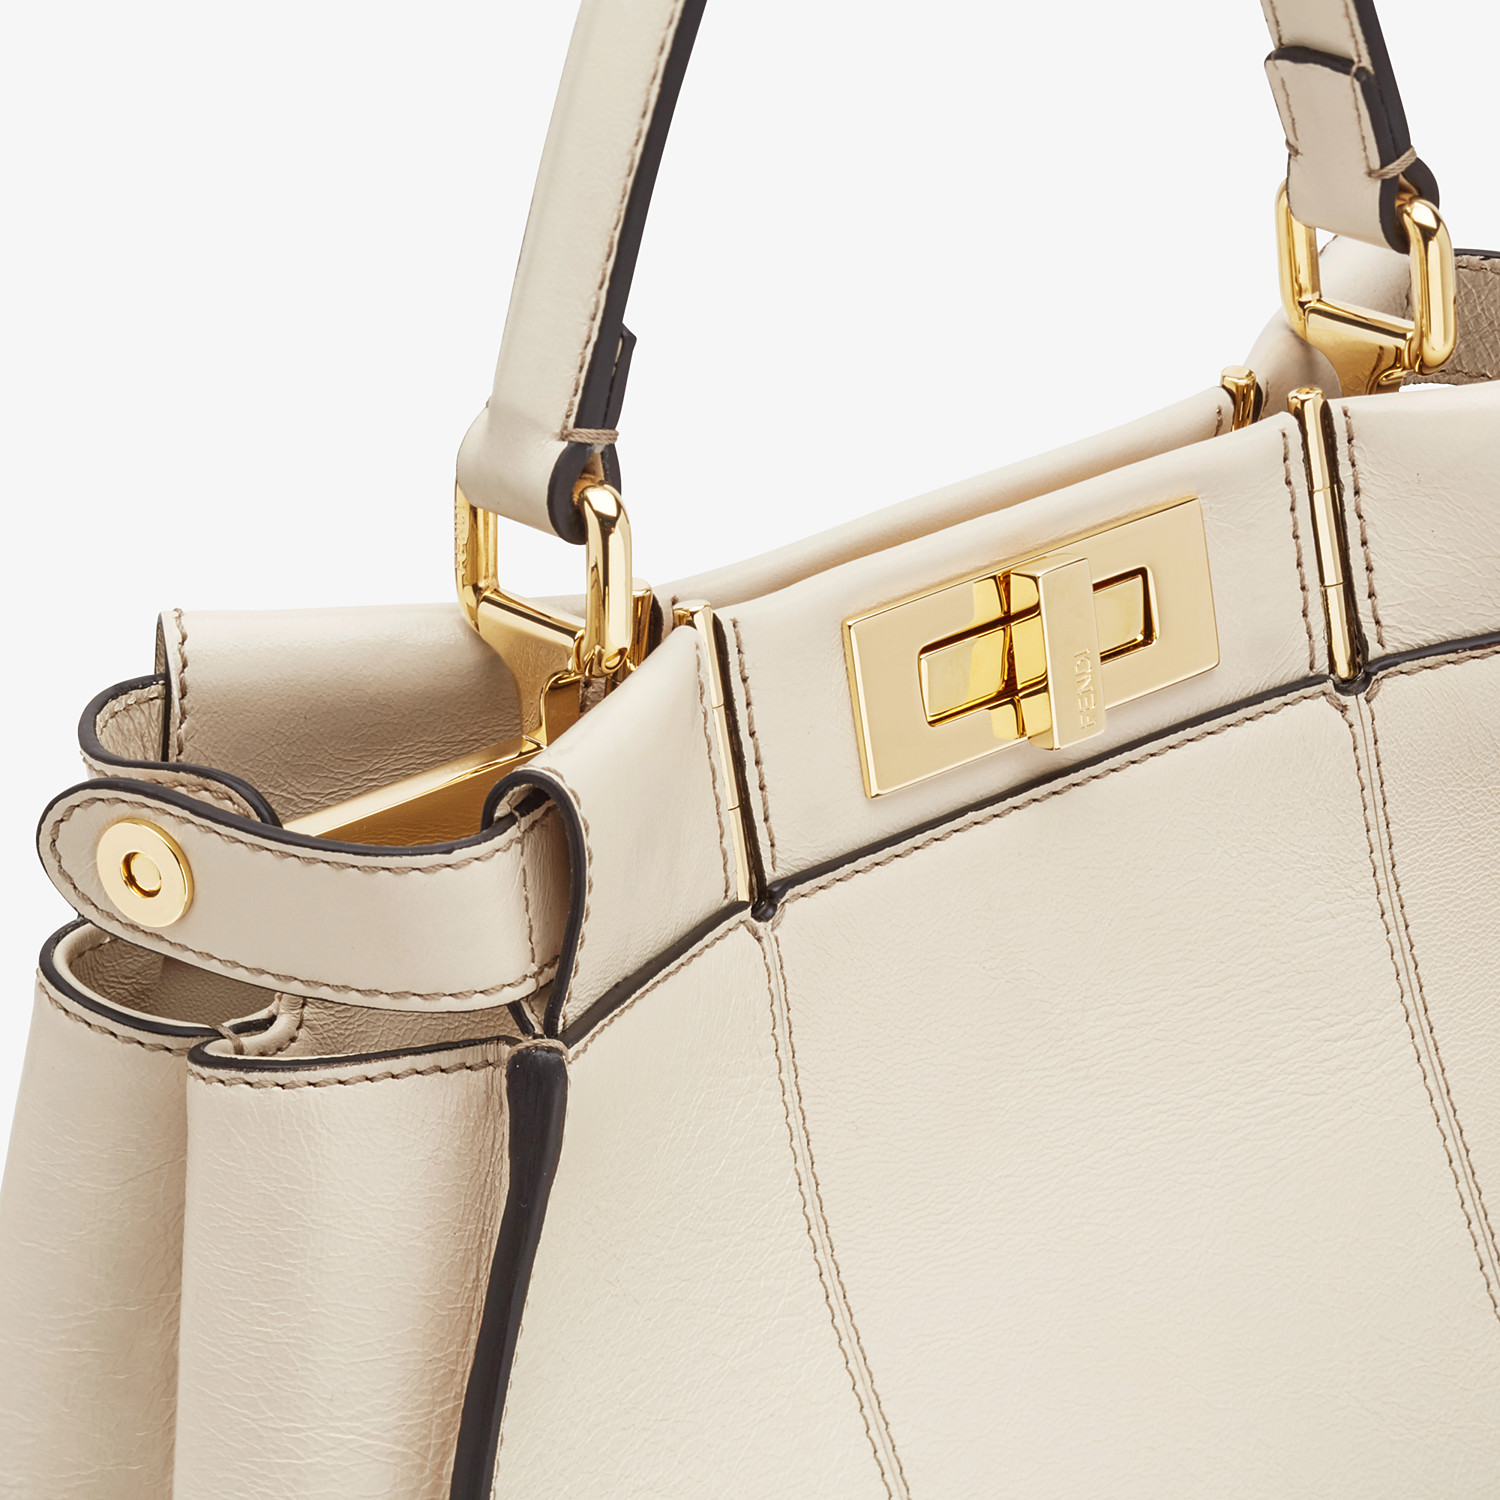 FENDI PEEKABOO ICONIC MEDIUM - White leather bag - view 7 detail